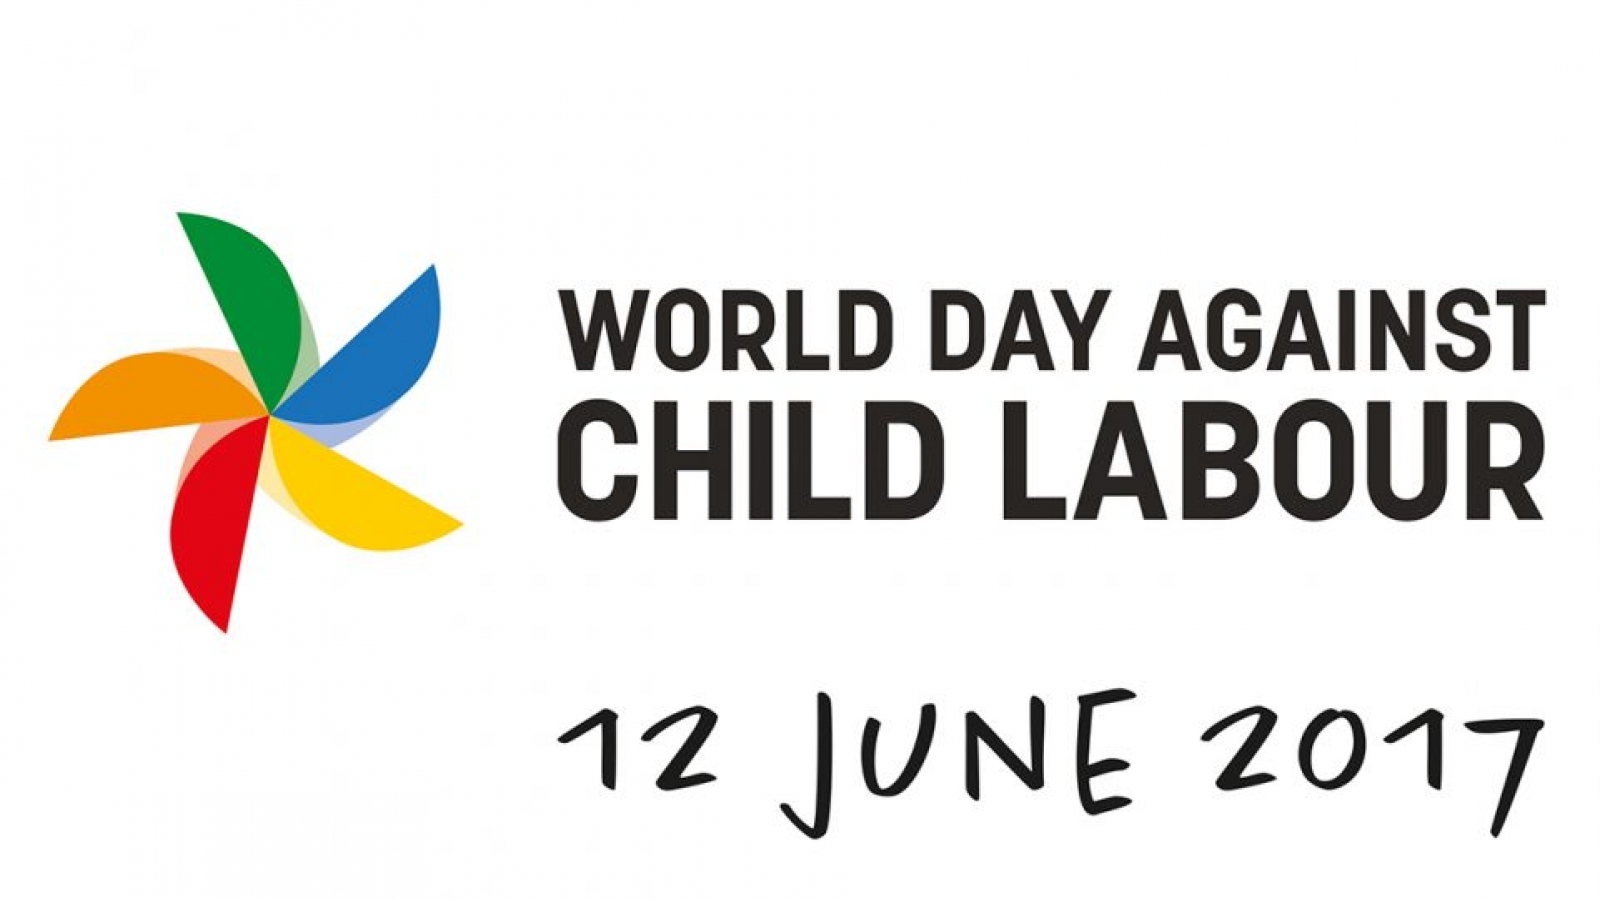 EU reiterates its commitment to ending child labour worldwide